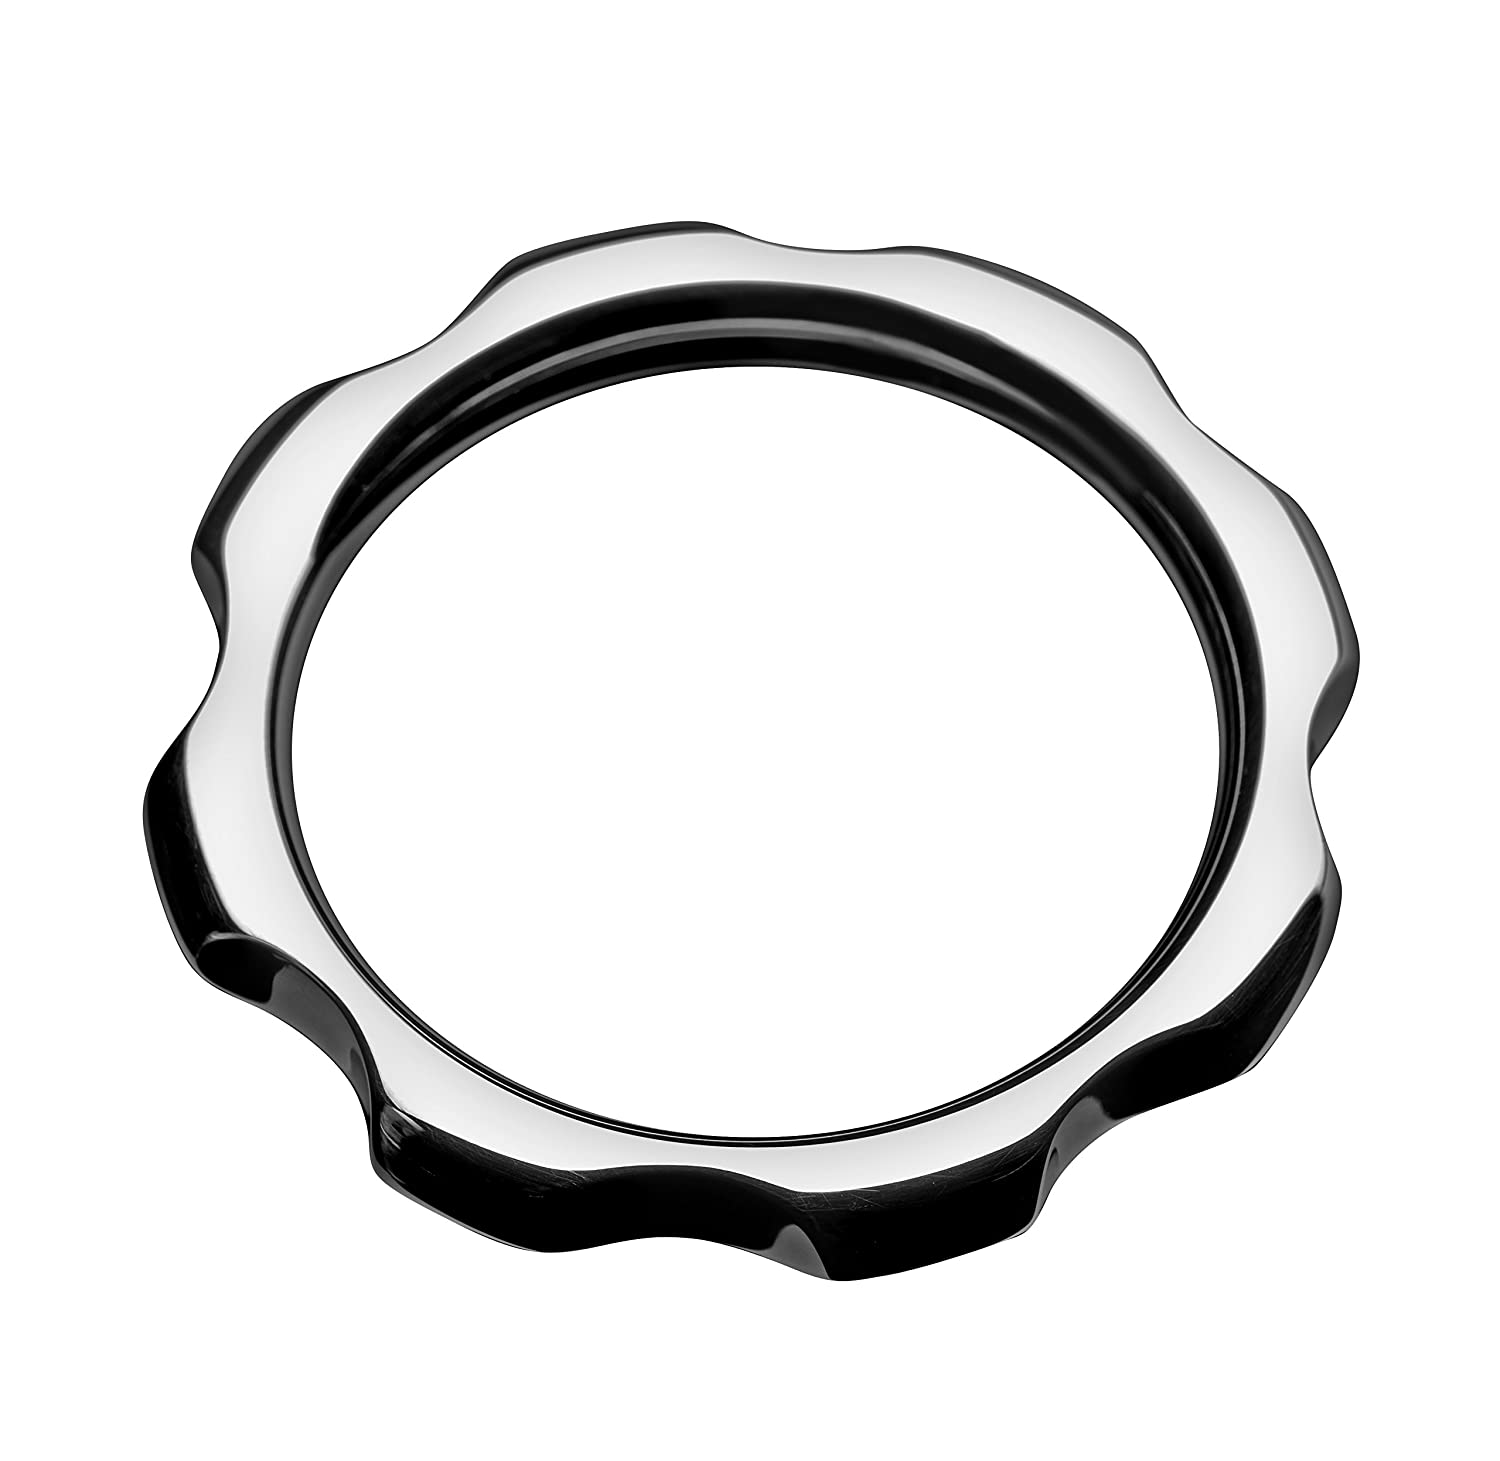 Amazon.com: Gear Head Metal Cock Ring - 1.75 Inch: Health & Personal Care